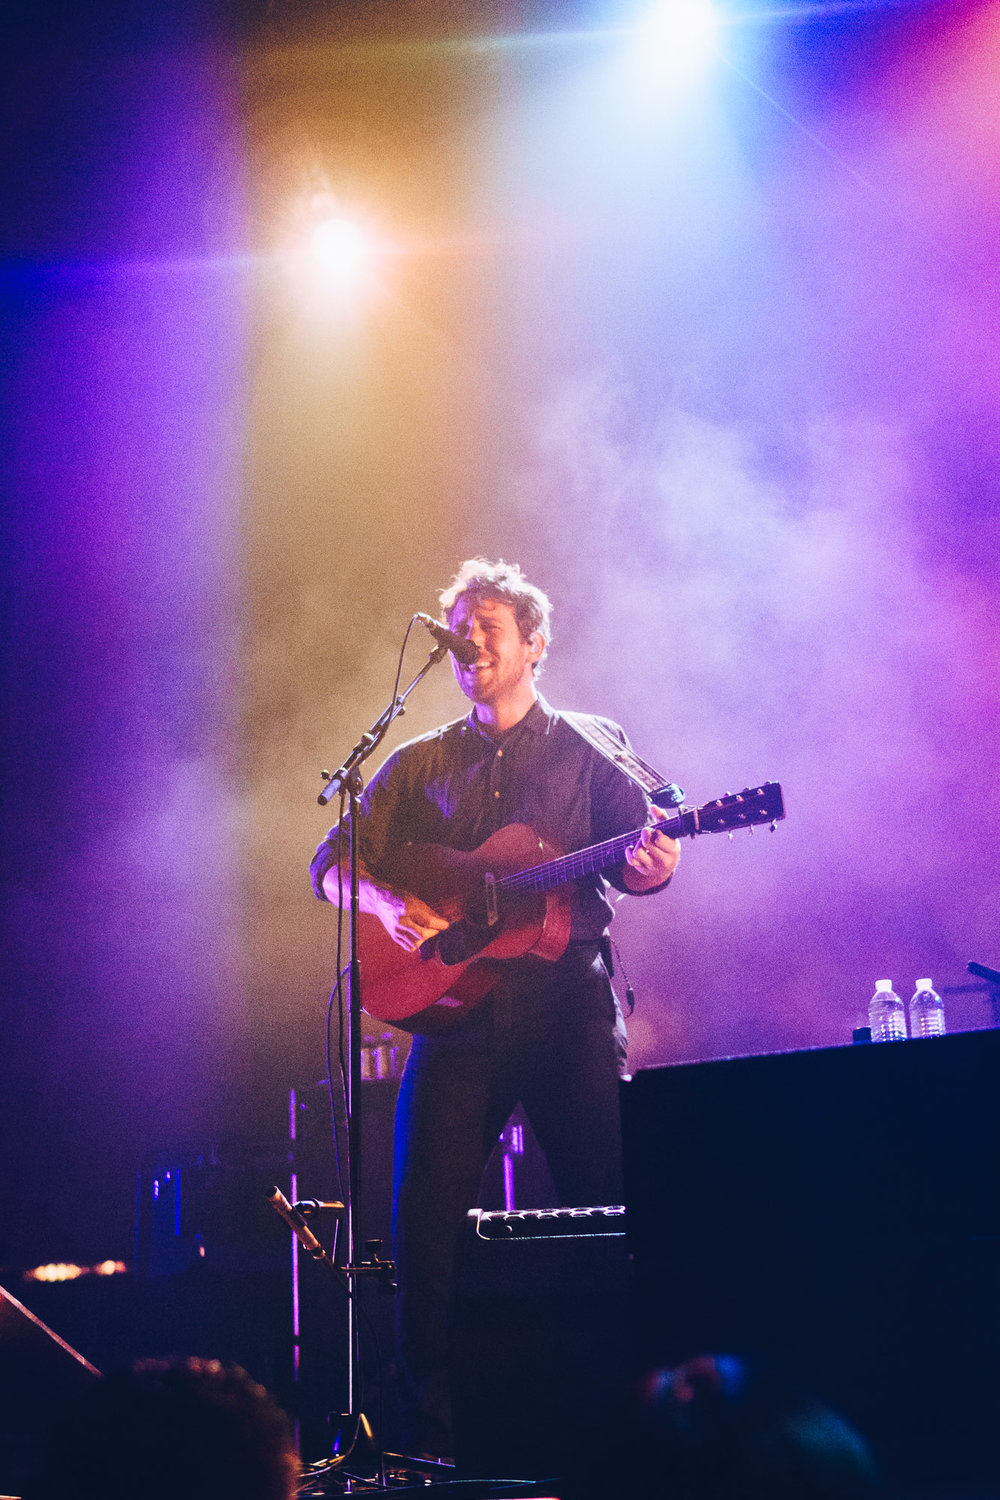 Fleet Foxes - Britton Strickland (11 of 16).jpg